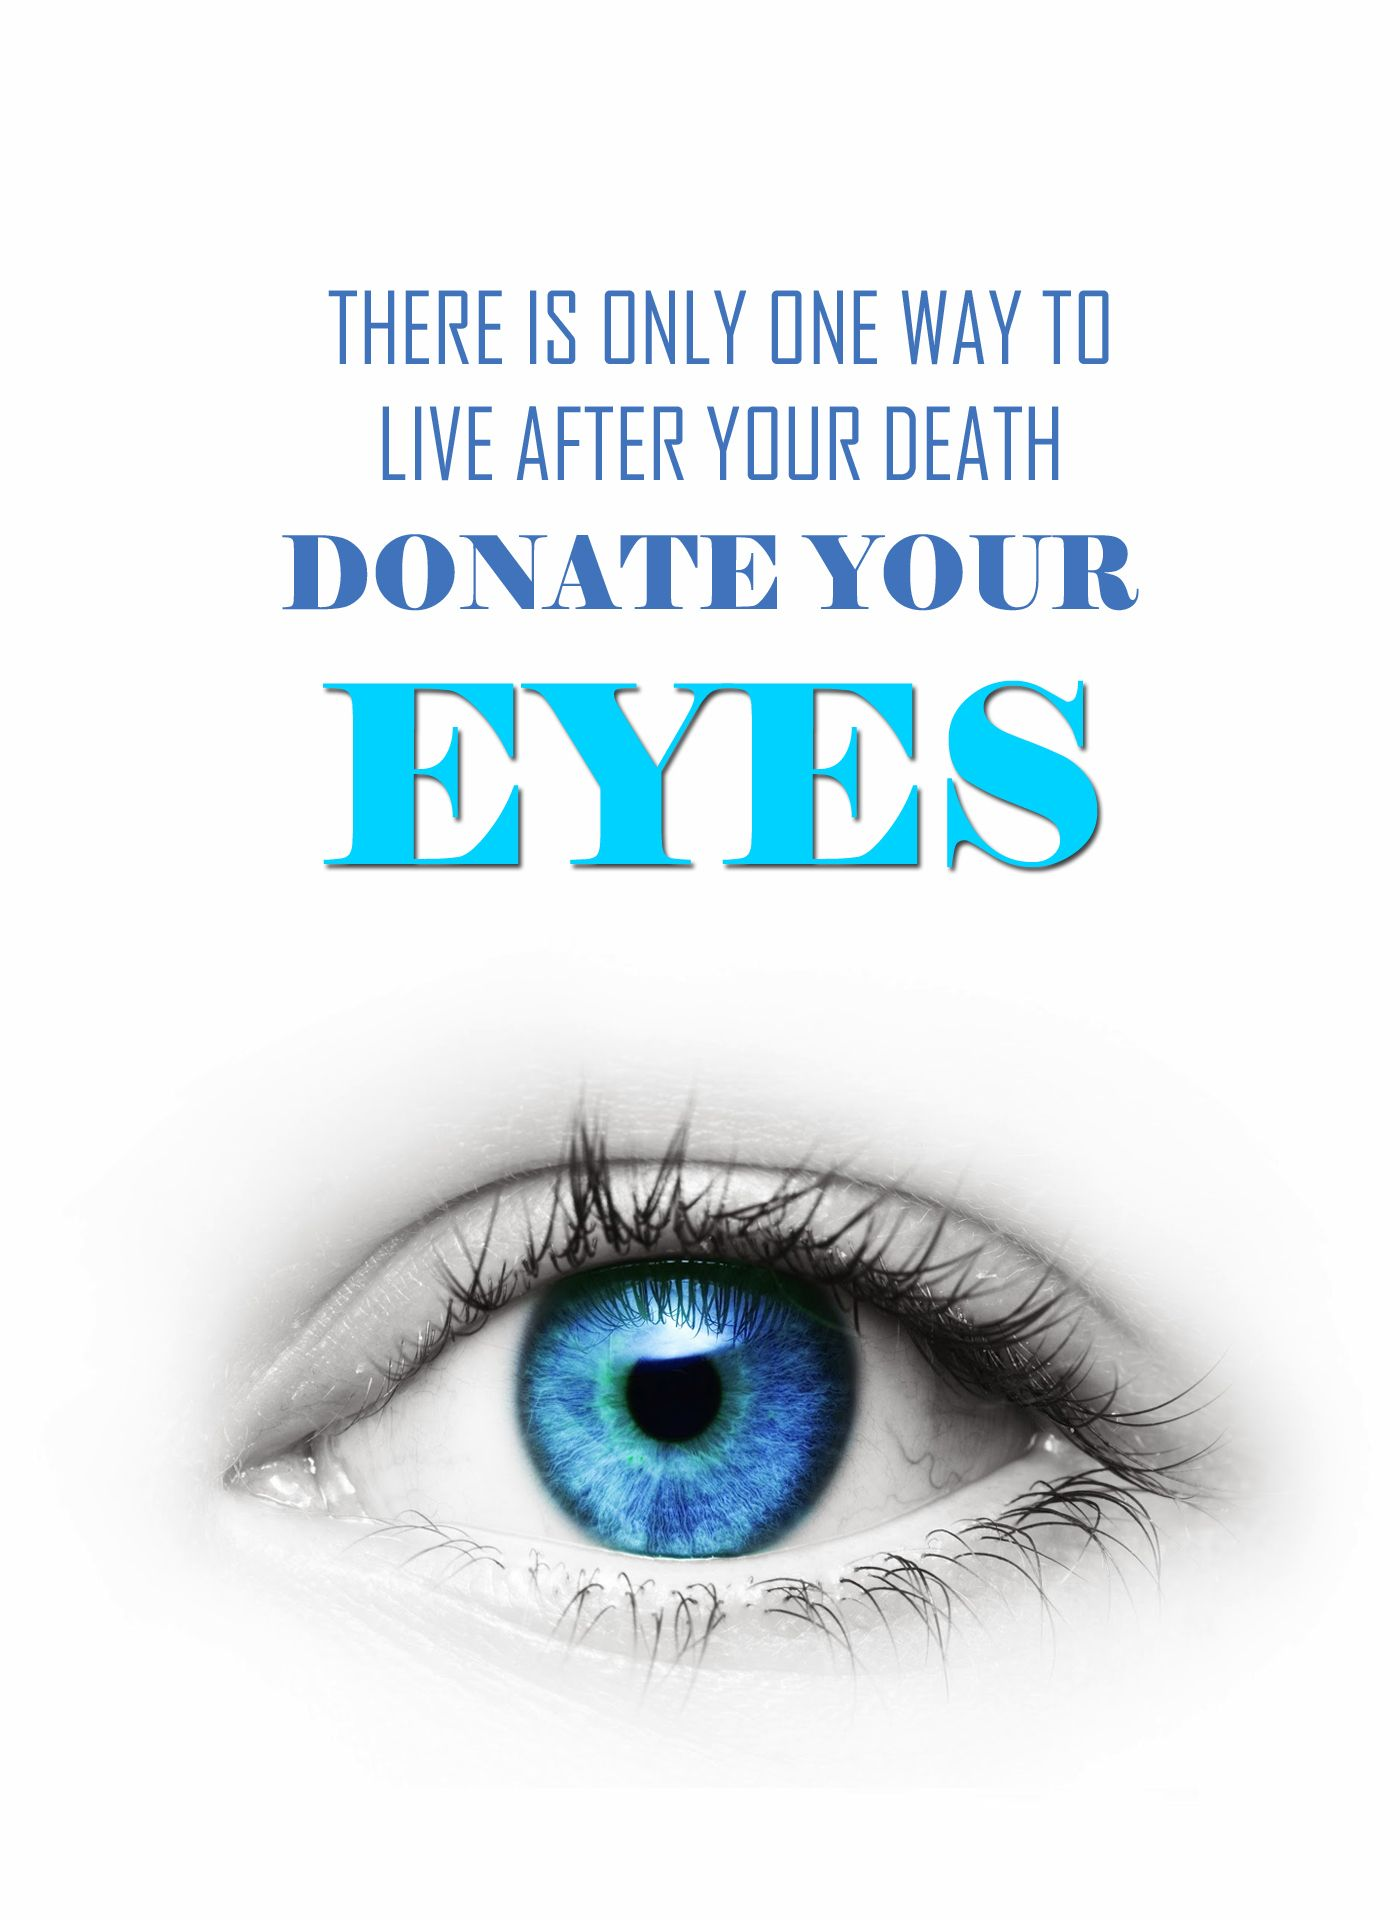 Donate Your Eyes Images For Whatsapp Motivational